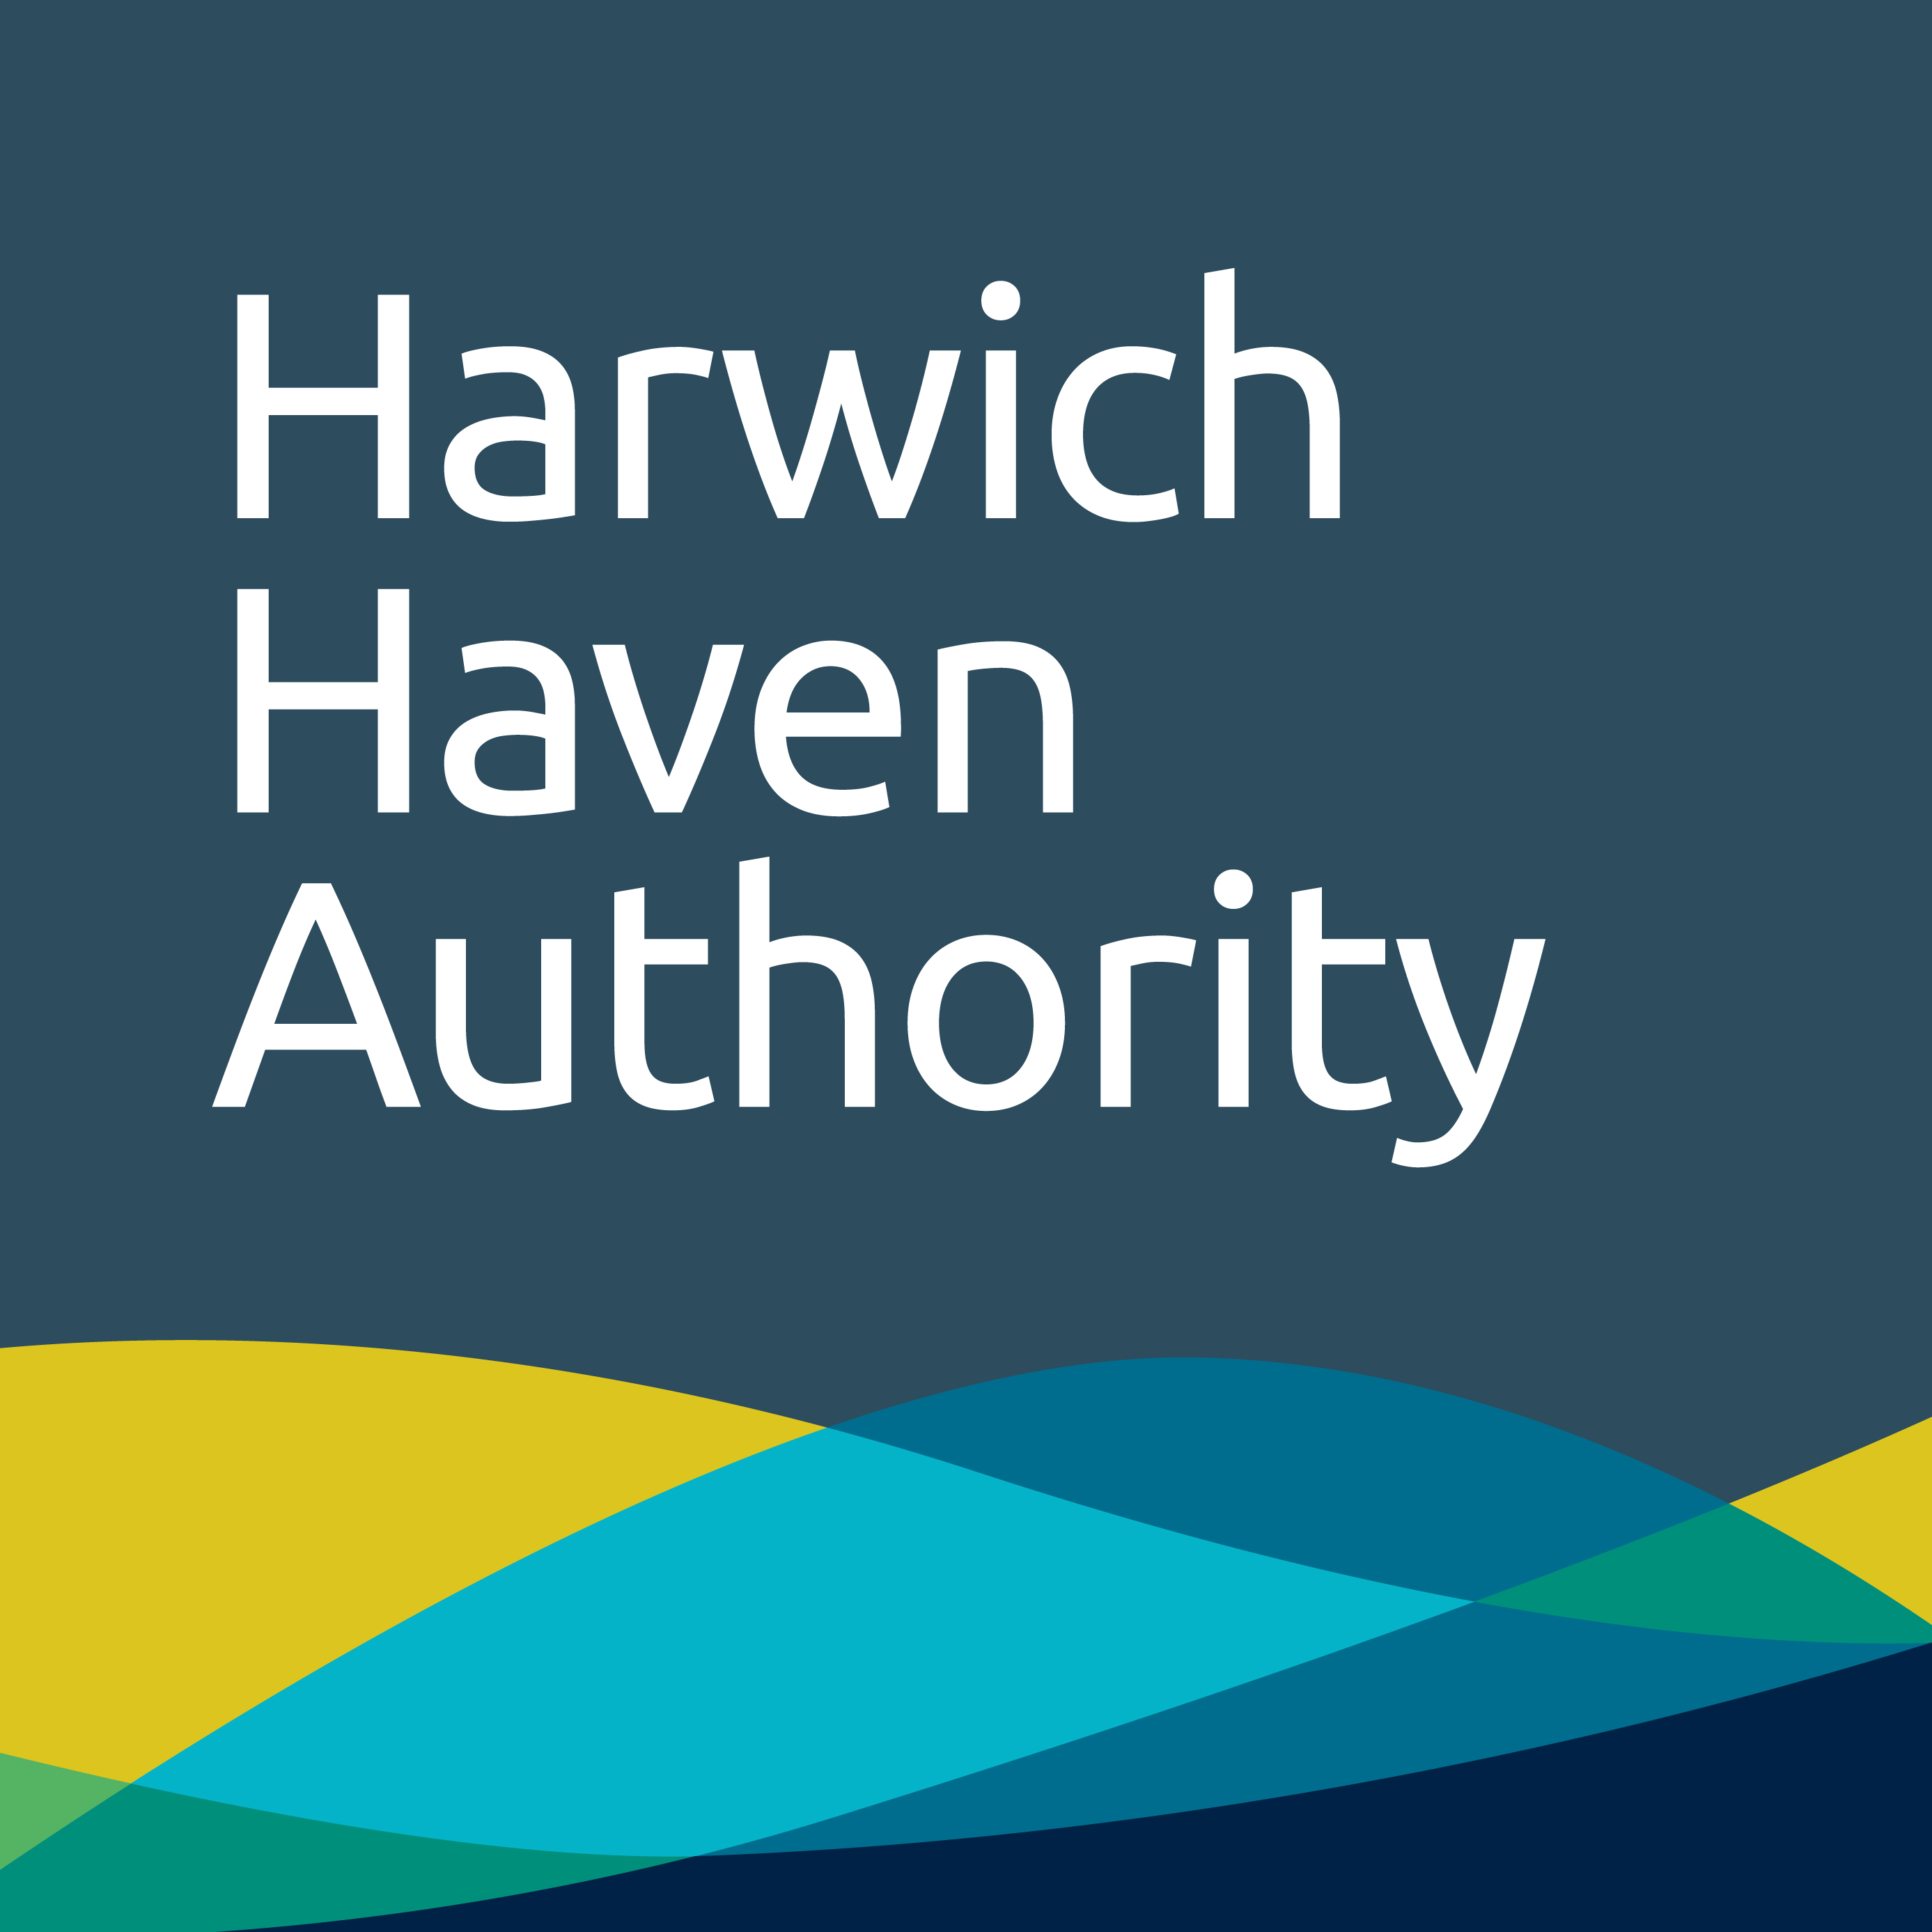 Harwich Haven authority logo. Employment law services